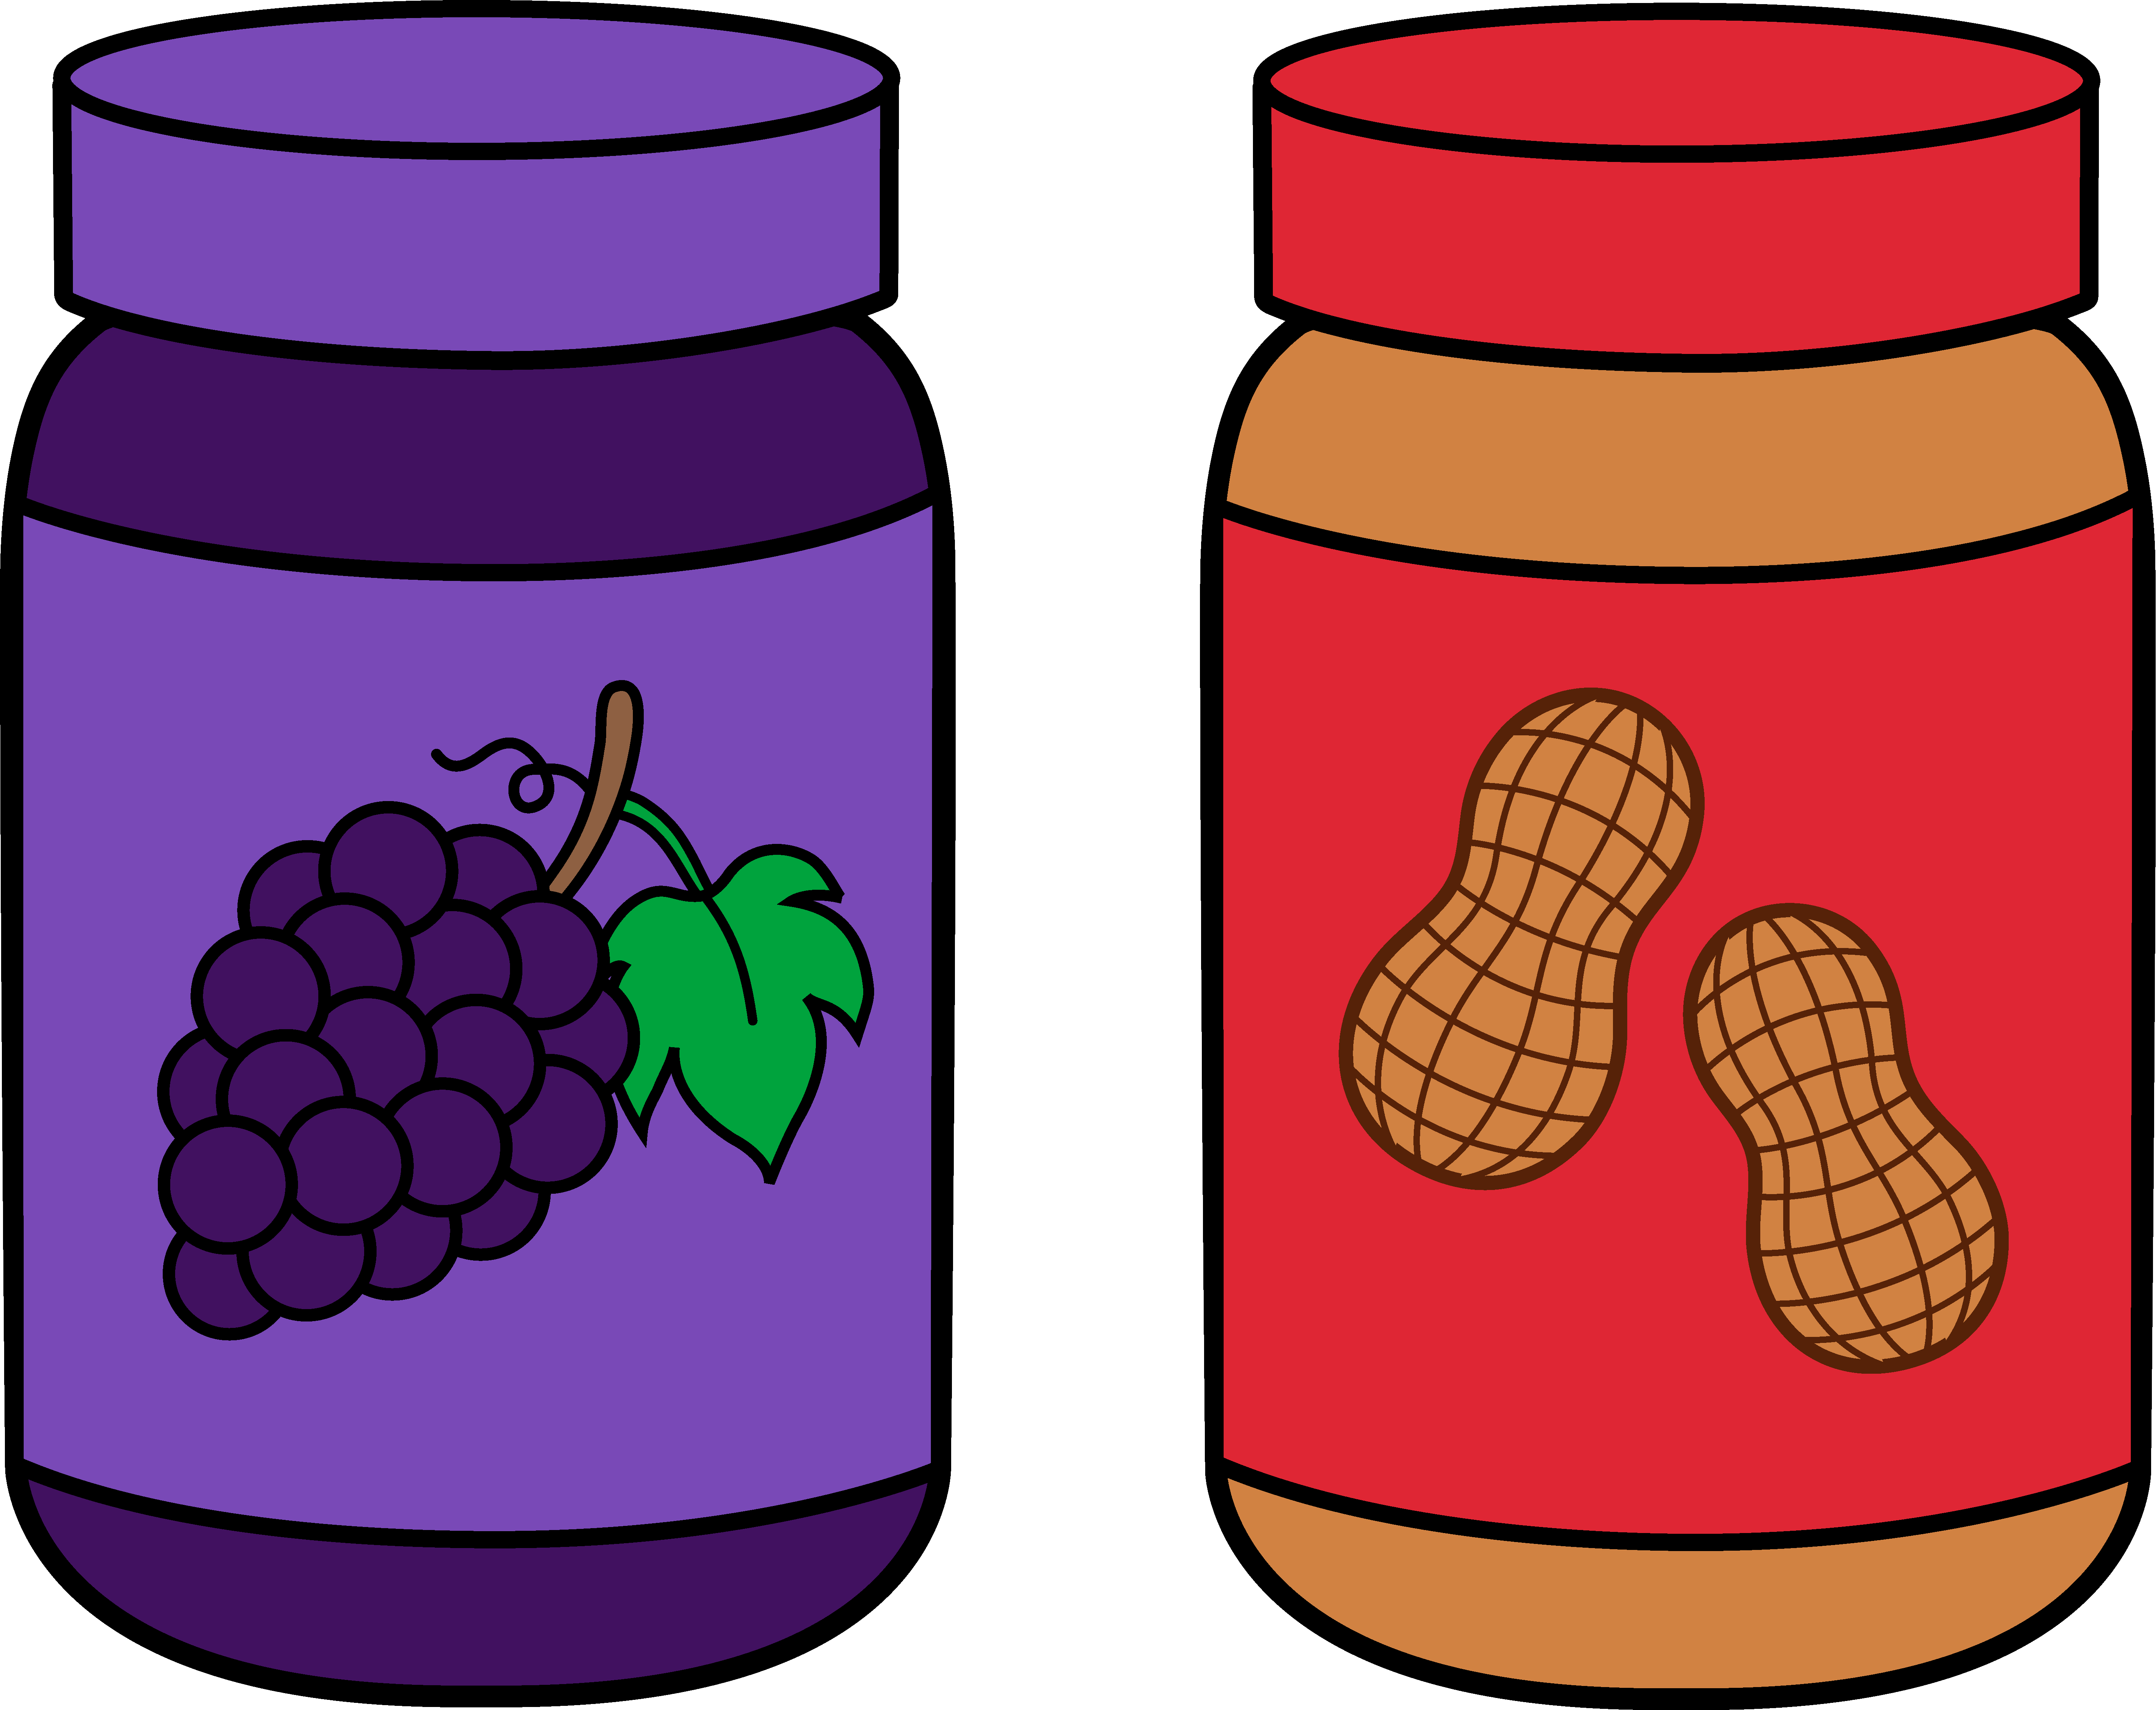 Peanut Butter And Jelly Clip Art & Peanut Butter And Jelly Clip.